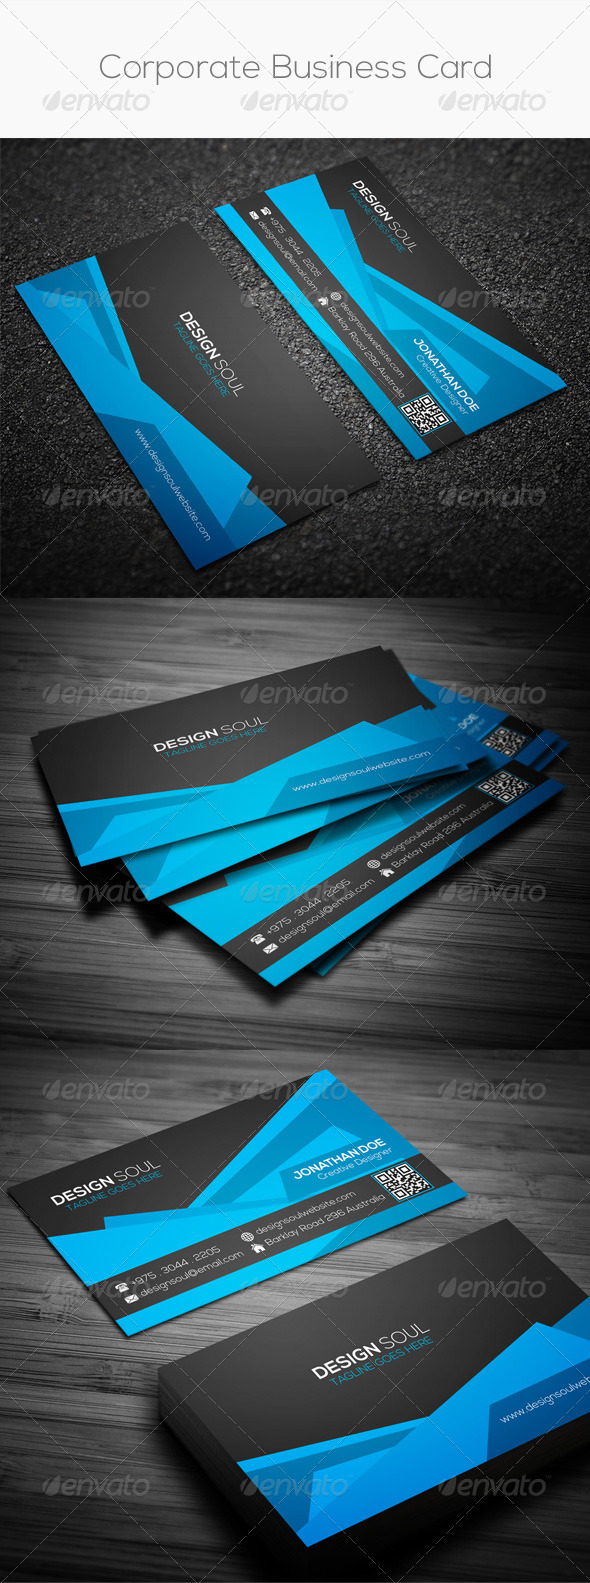 GraphicRiver Corporate Business Card 8326554